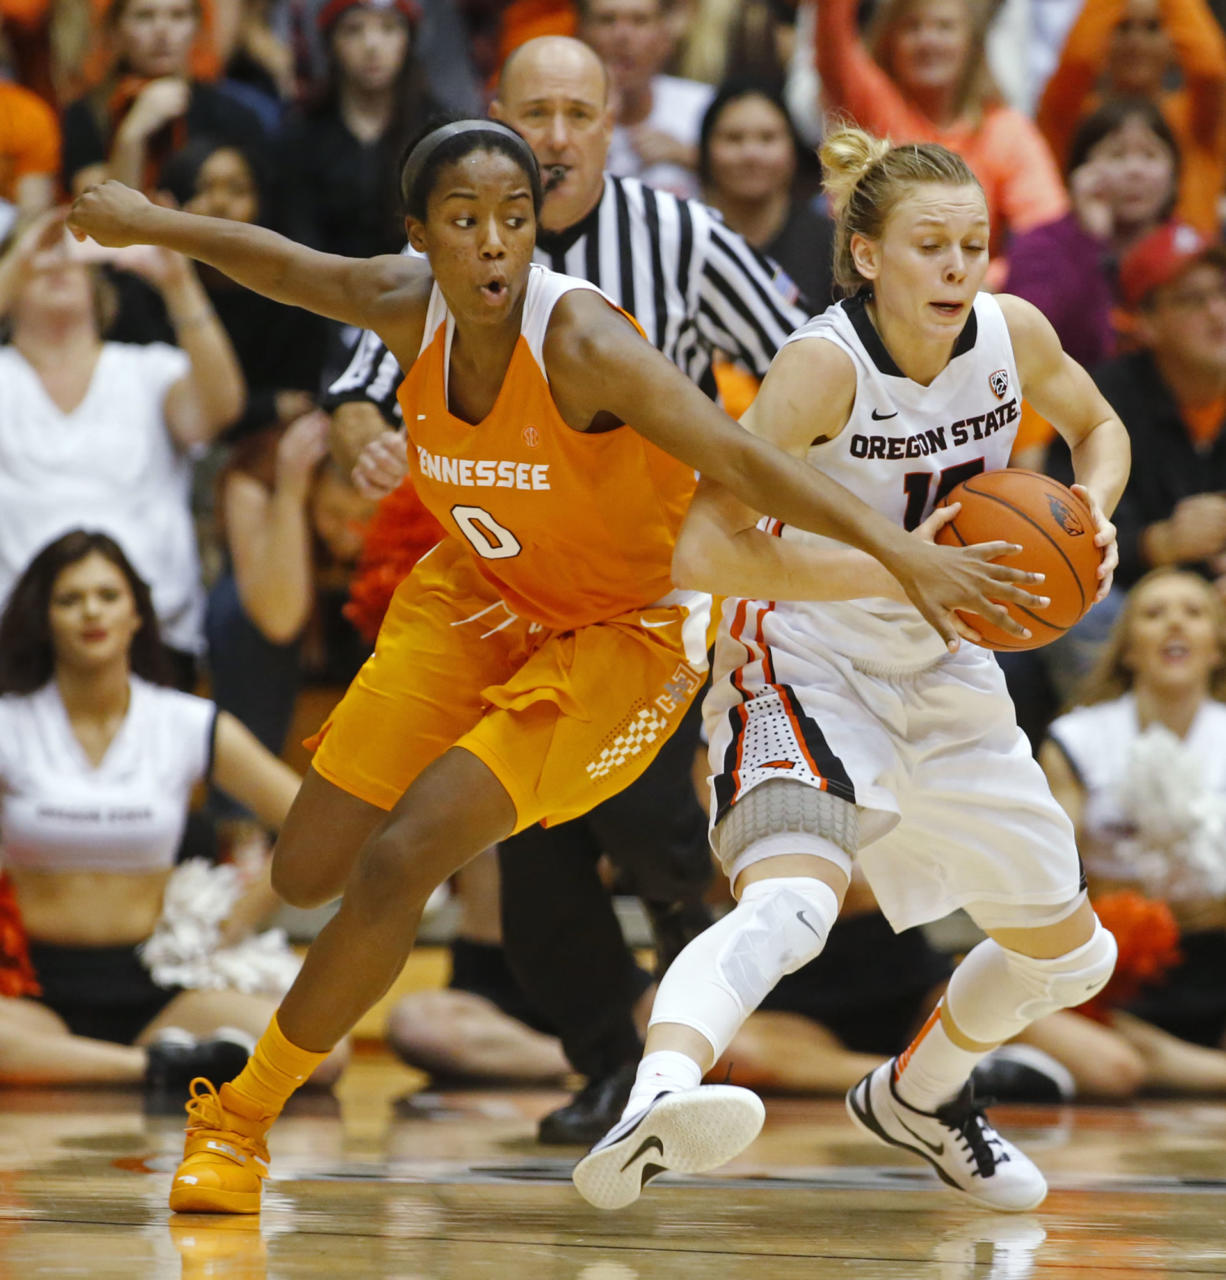 Oregon State's Jamie Weisner, right, protects the ball from Tennessee's Jordan Reynolds during the second half of an NCAA college basketball game in Corvallis, Ore., on Saturday, Dec. 19, 2015. Tennessee won 53-50. (AP Photo/Timothy J.